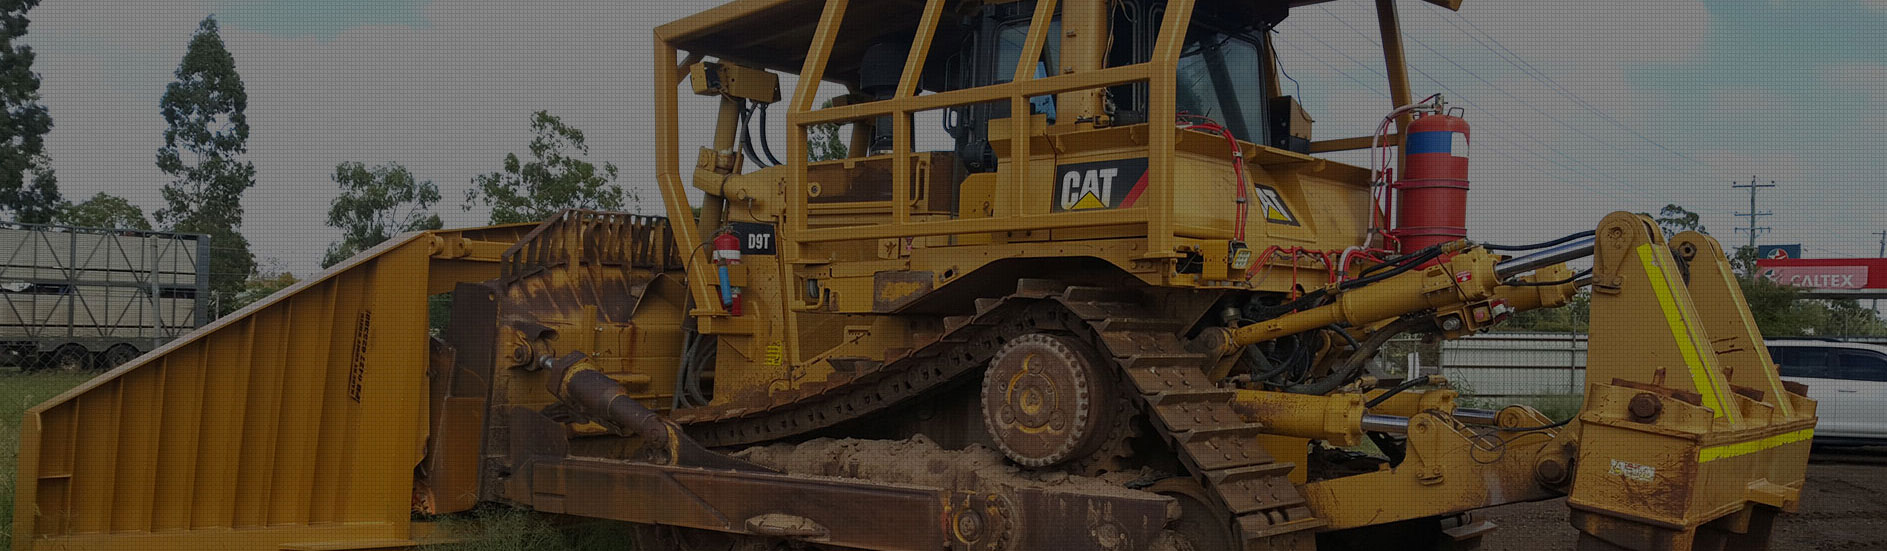 Caterpillar Heavy Machine Banner